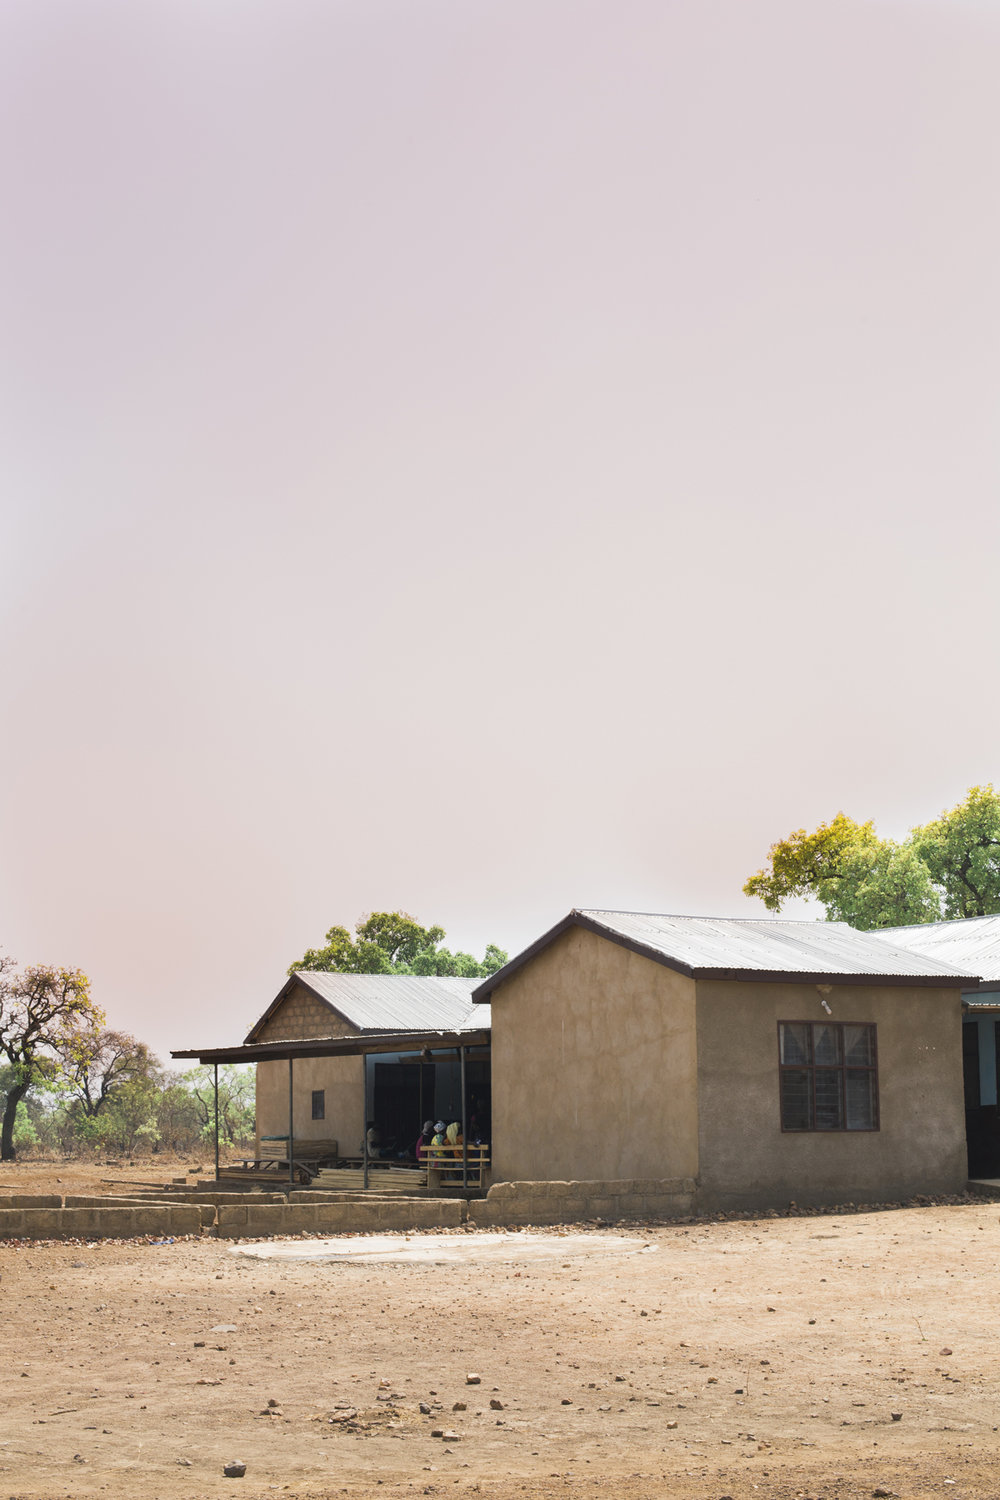 Completed in 2014, the medical clinic gave everyone in the community ease of access to healthcare, instead of traveling far distances to reach medical care.